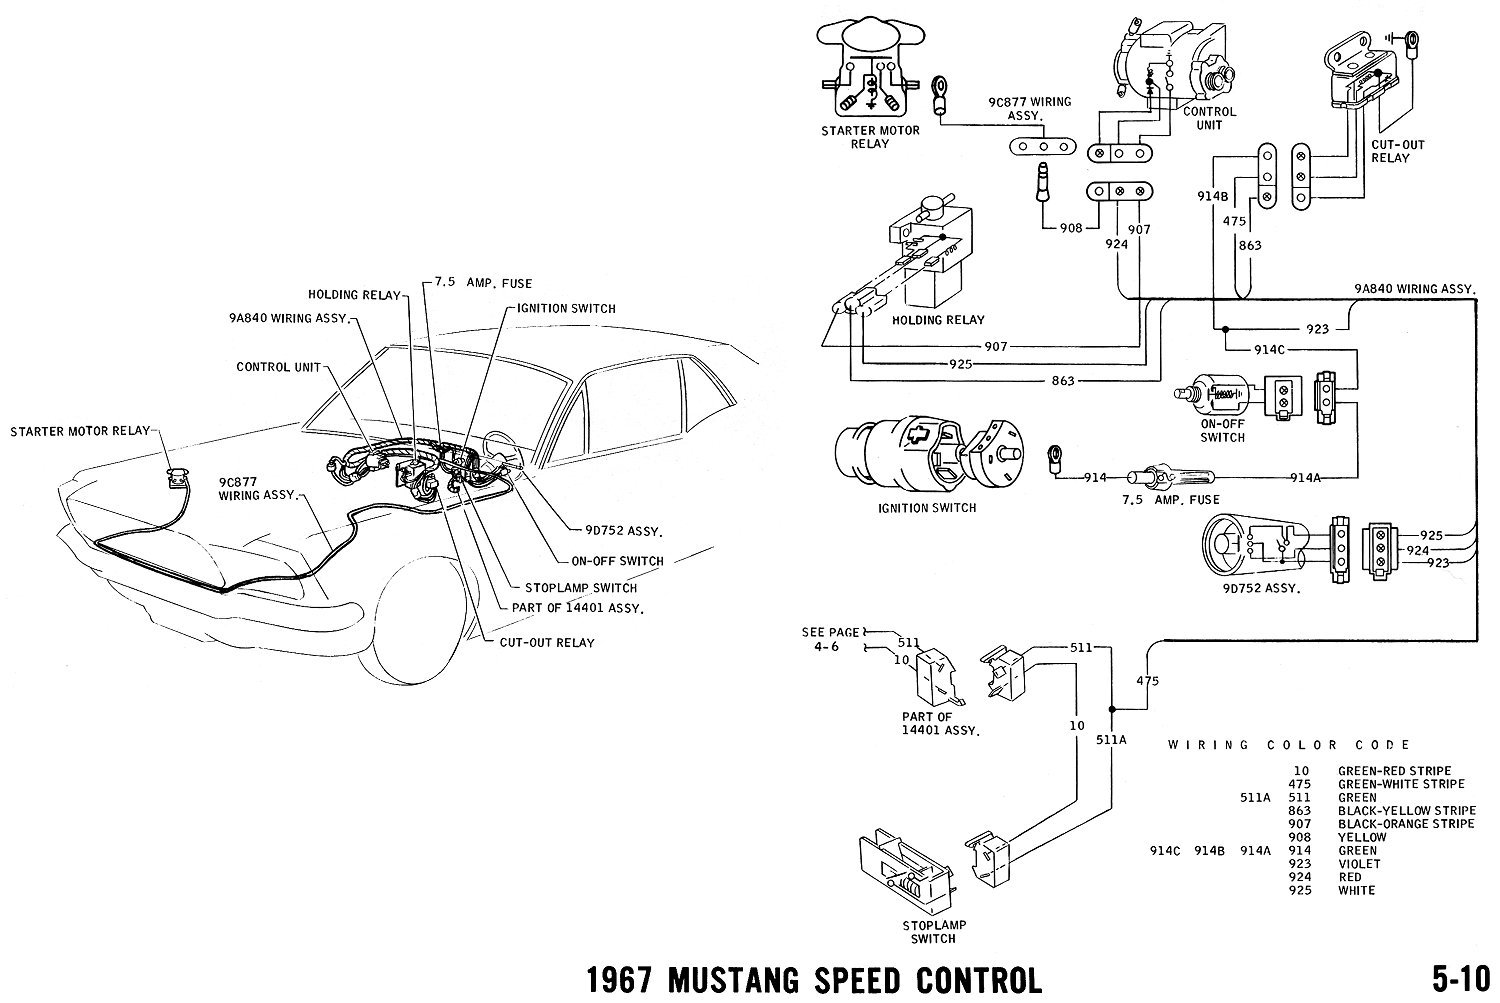 1967 Mustang Wiring and Vacuum Diagrams - Average Joe Restoration | Ford Mustang Wiper Switch Wiring Diagram 1967 |  | Average Joe Restoration